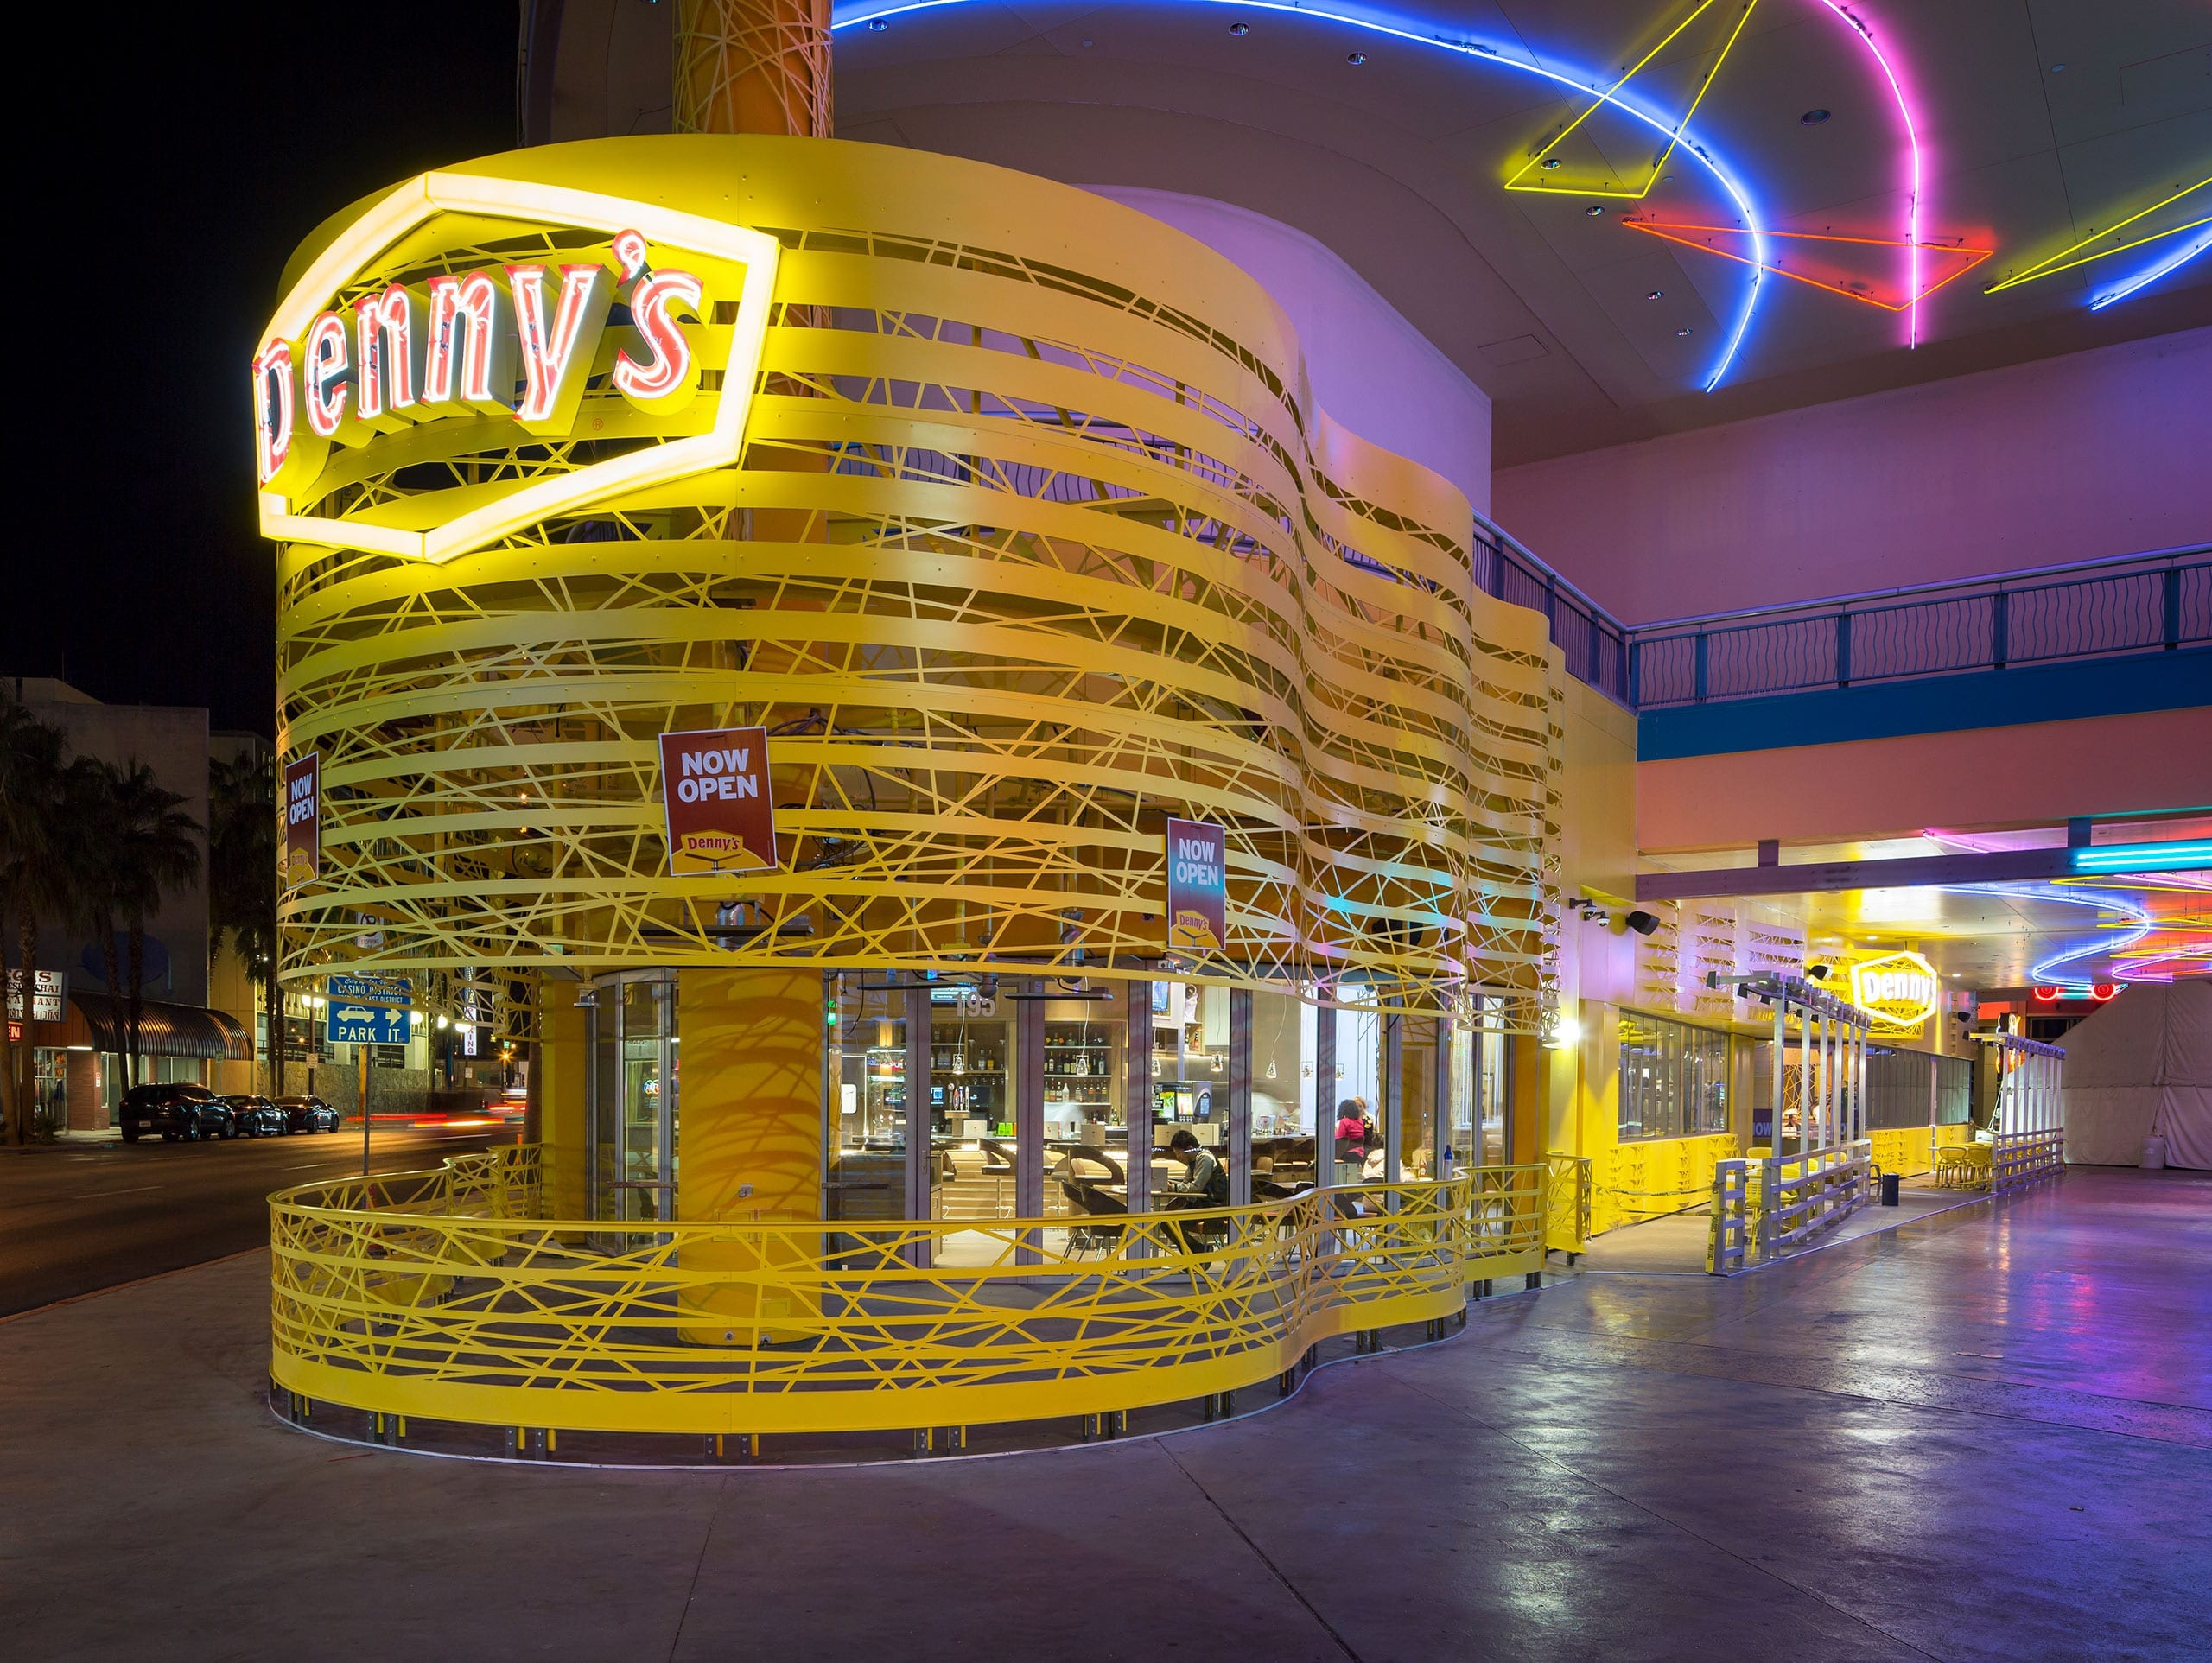 Photograph of the completed Denny's Flagship Diner / Early rendering of the desgin.